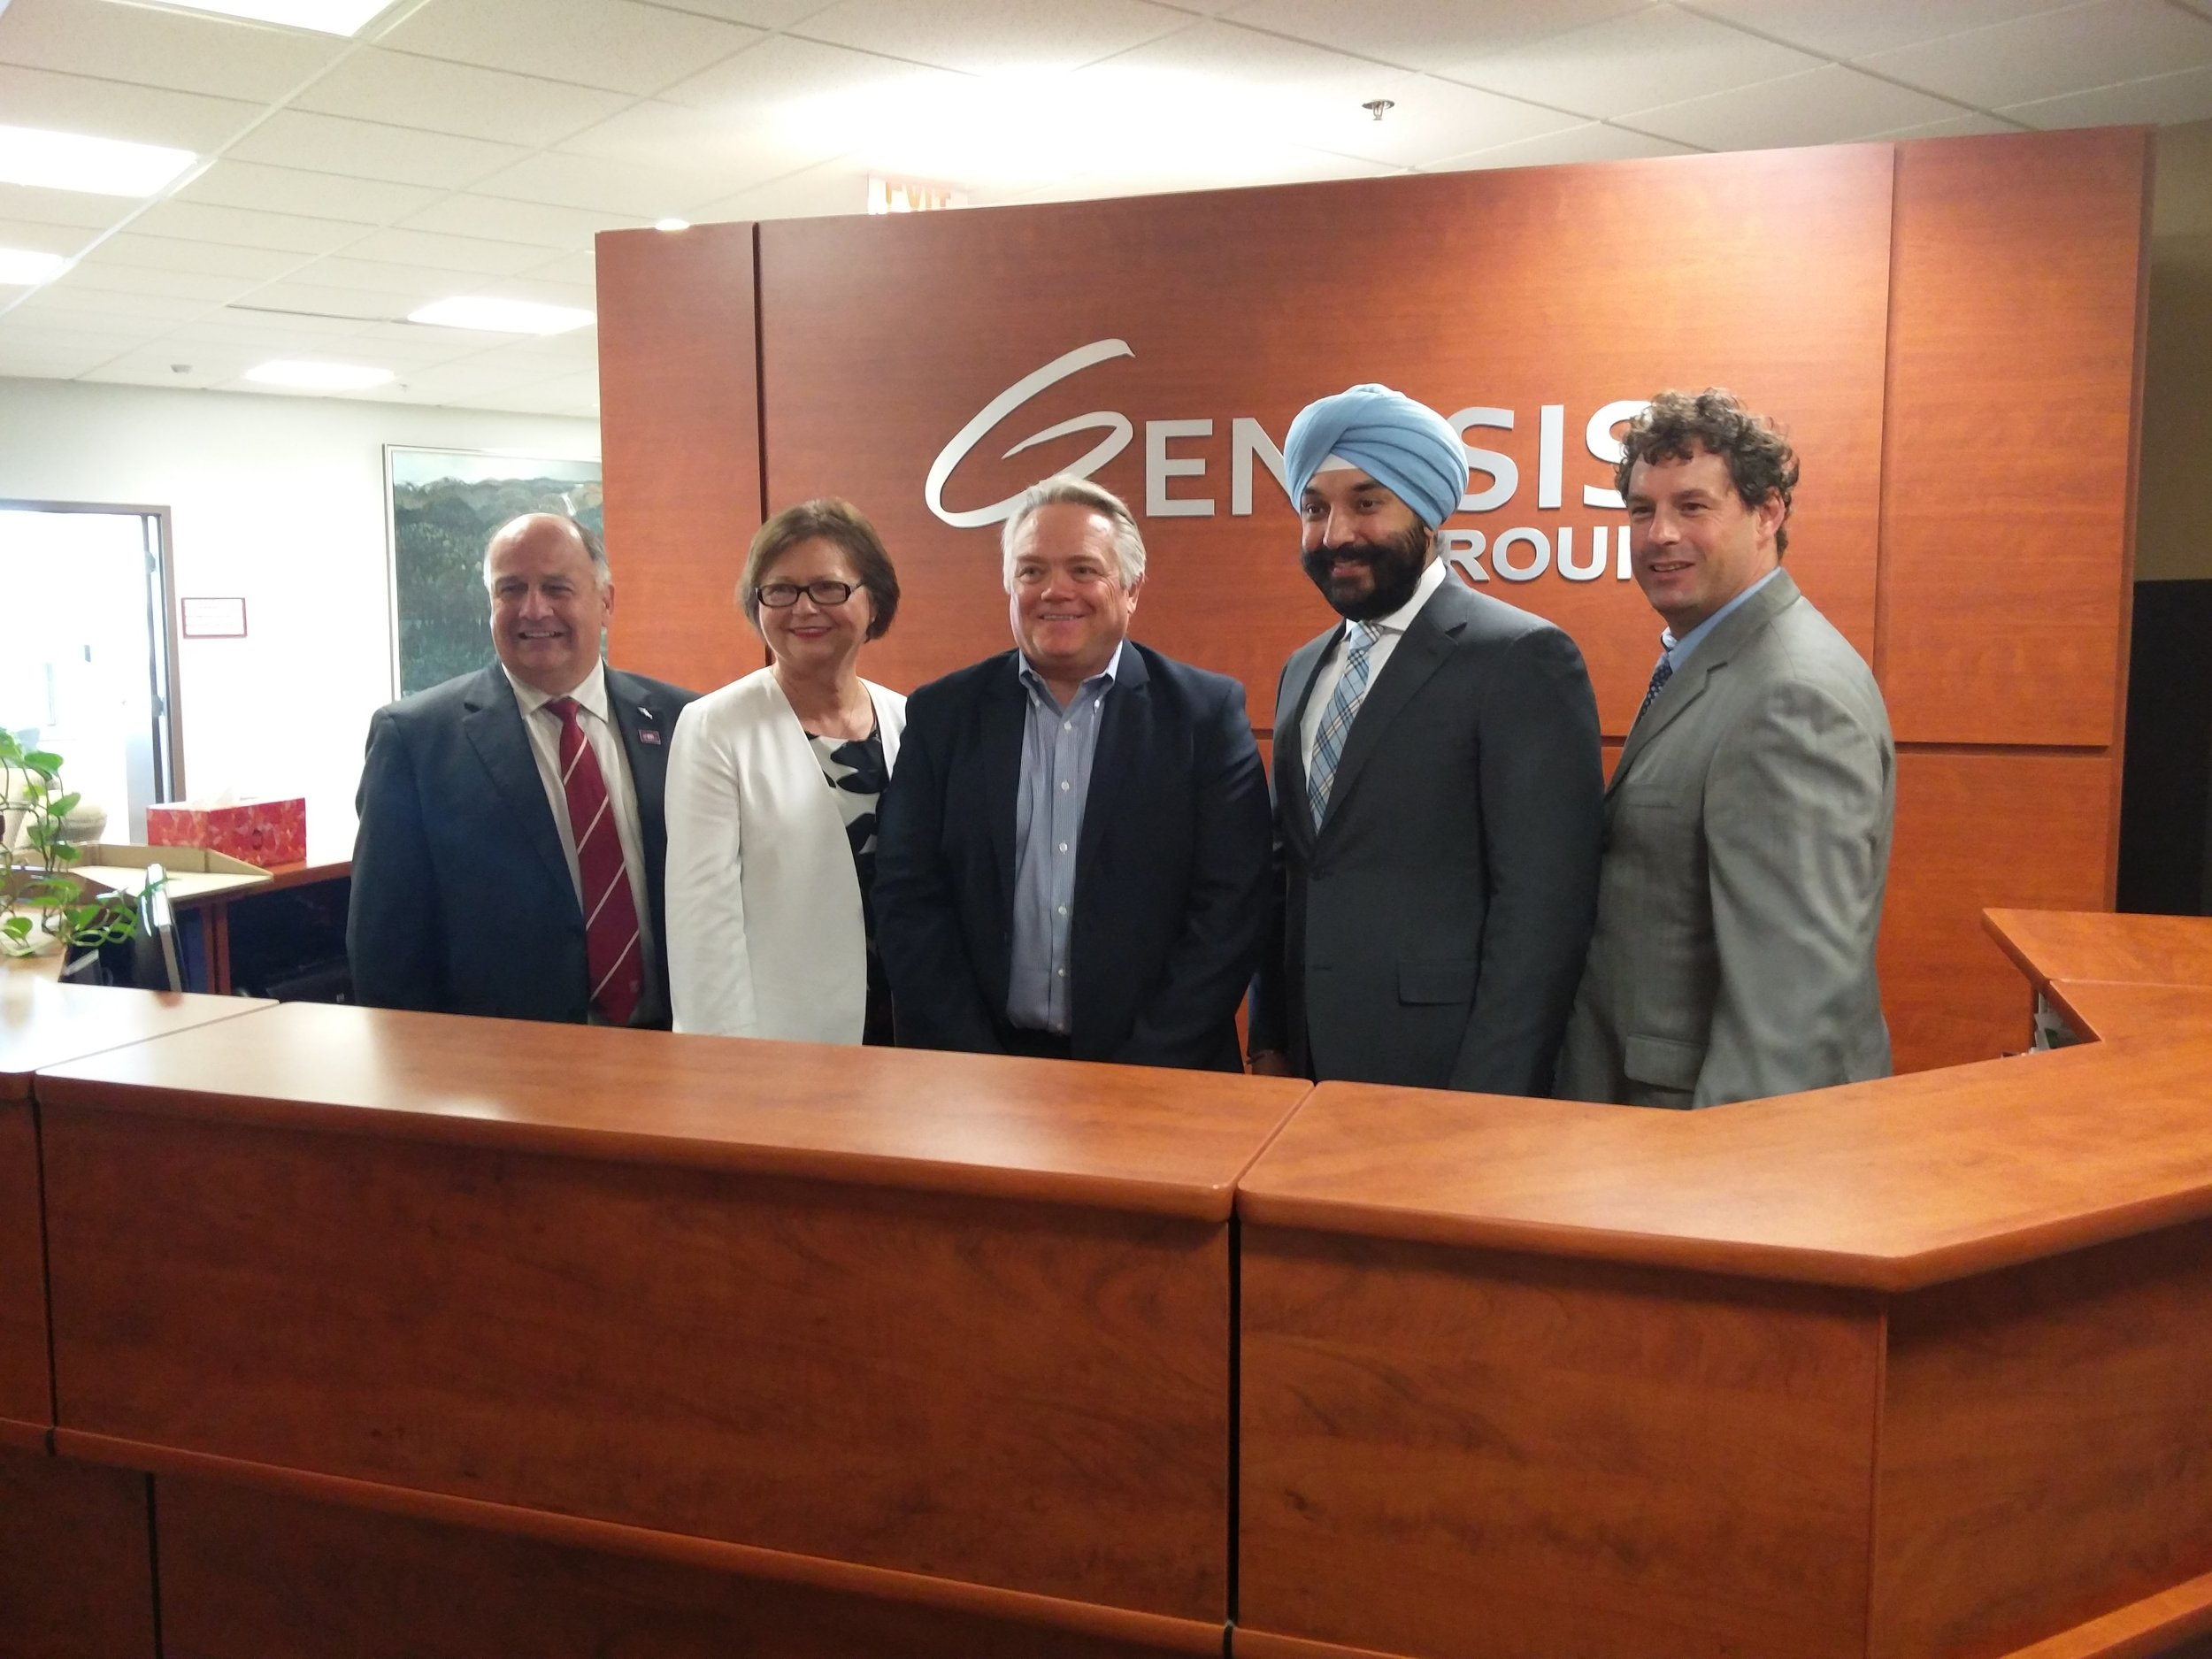 From left: Memorial University President Dr. Gary Kachanoski, the Hon. Minister Judy Foote, Genesis Group President and CEO Greg Hood, Hon. Minister Navdeep Bains. and MP Nick Whalen.